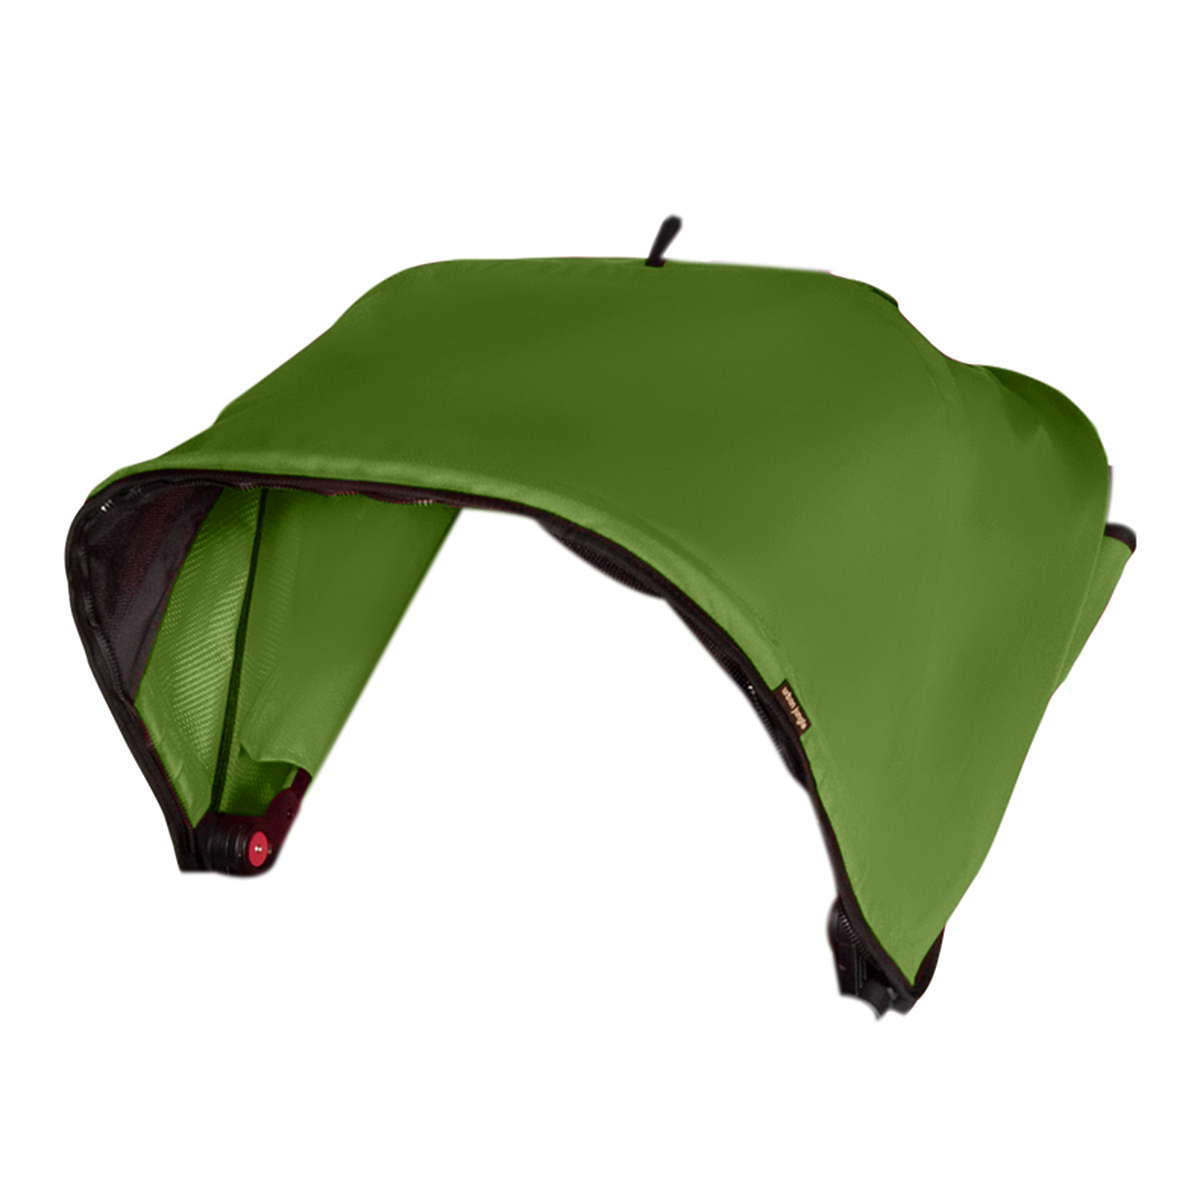 UrbanJungle/Terrain sunhood JADE-30